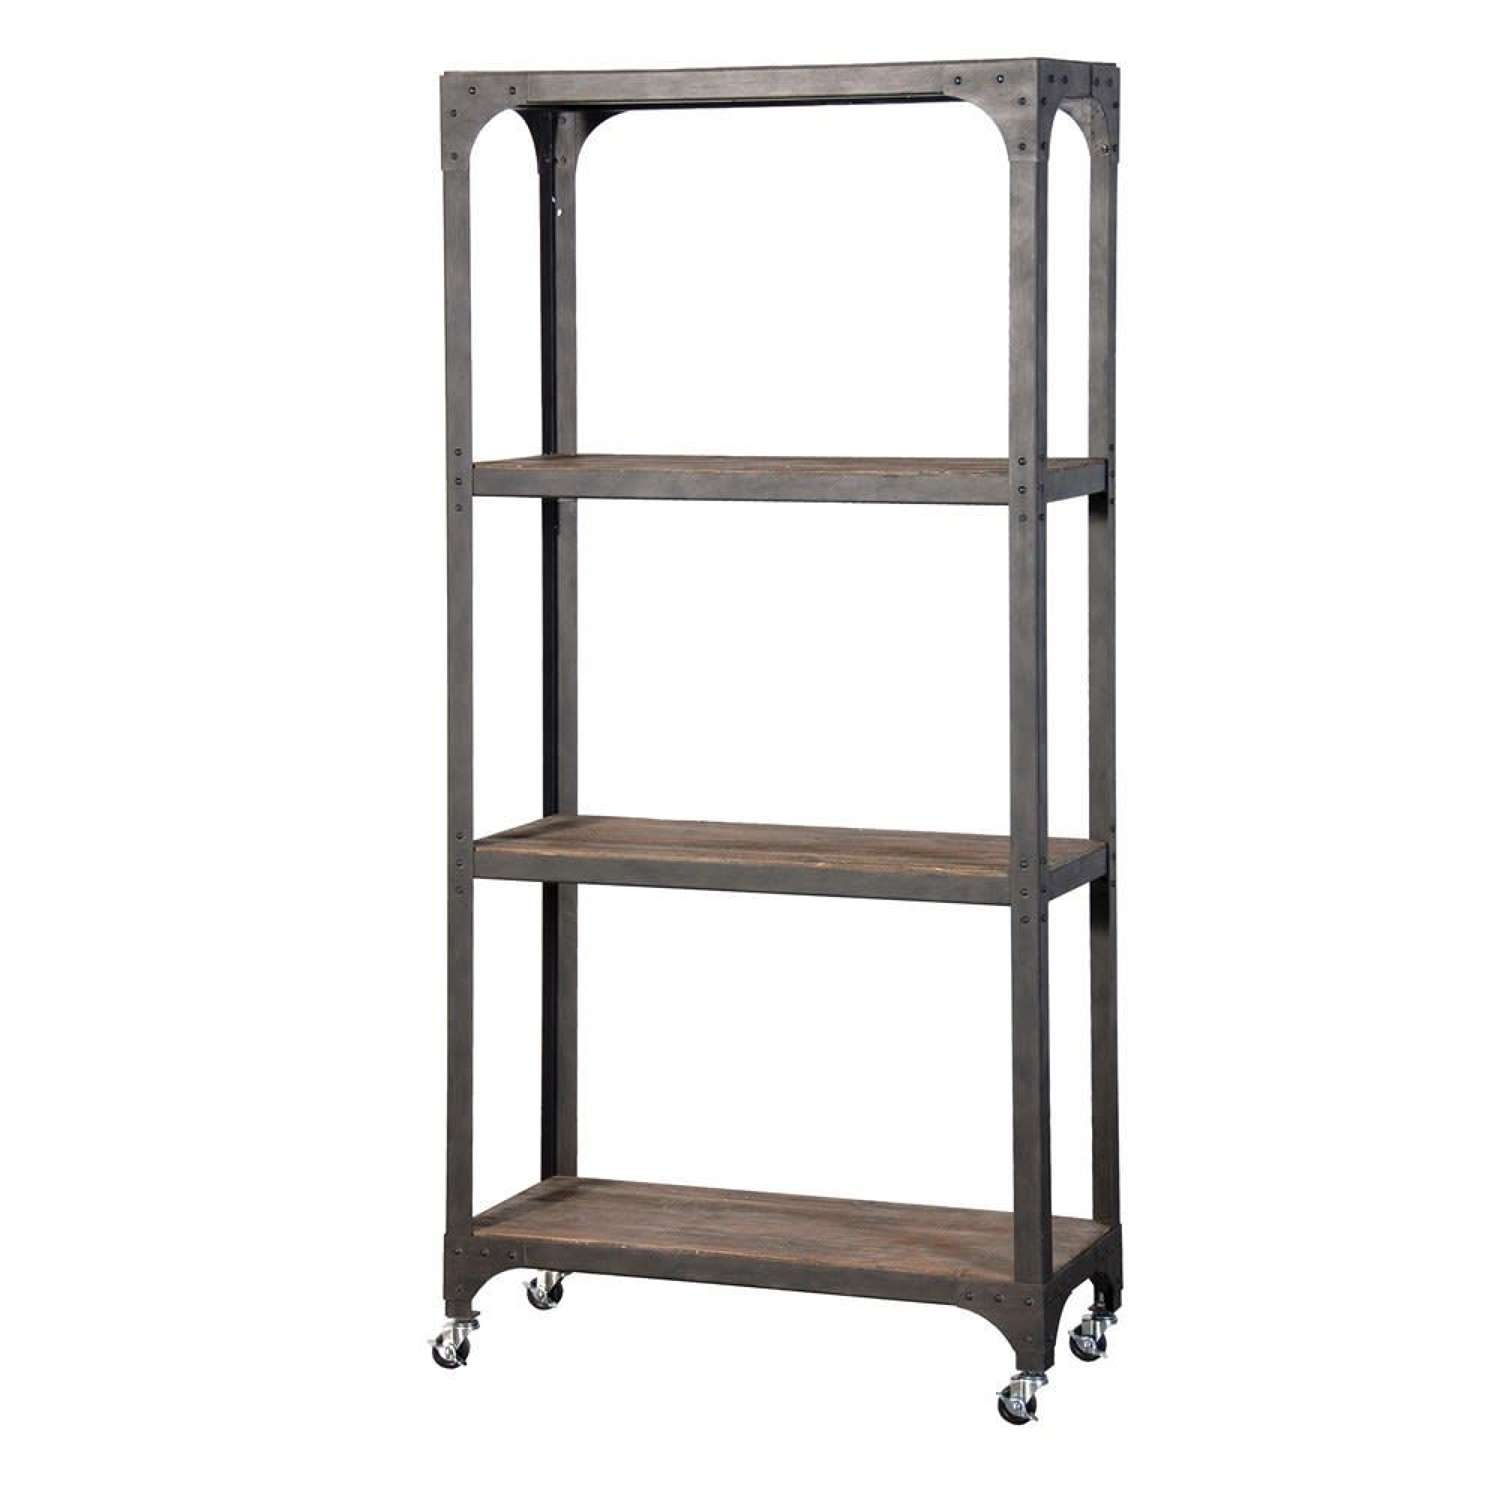 Industrial Style Shelving Unit on Wheels